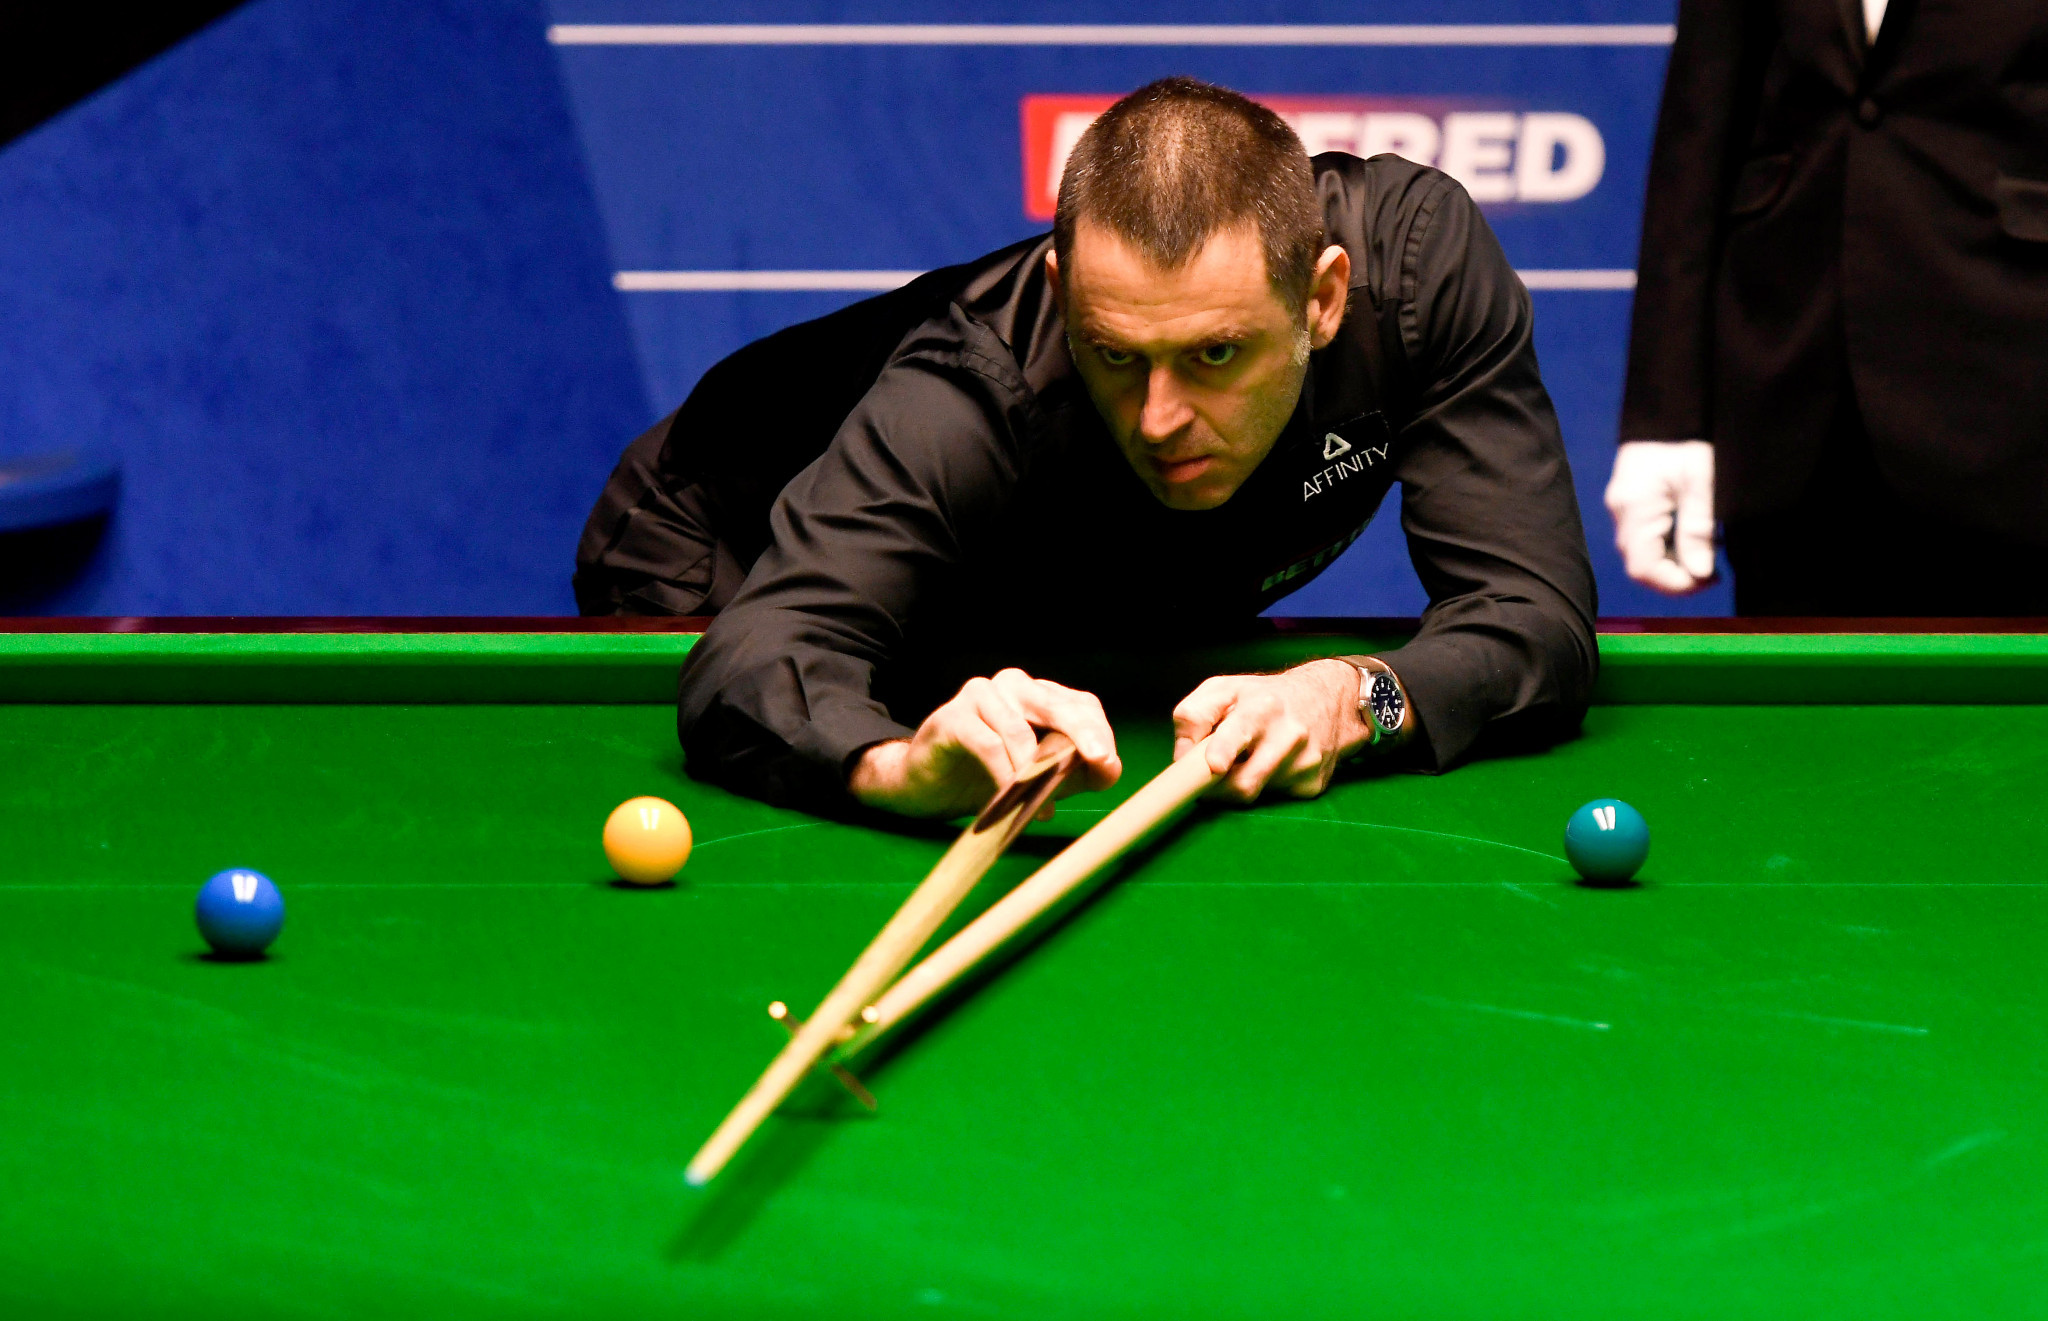 O'Sullivan wins in record time on day four of World Snooker Championship